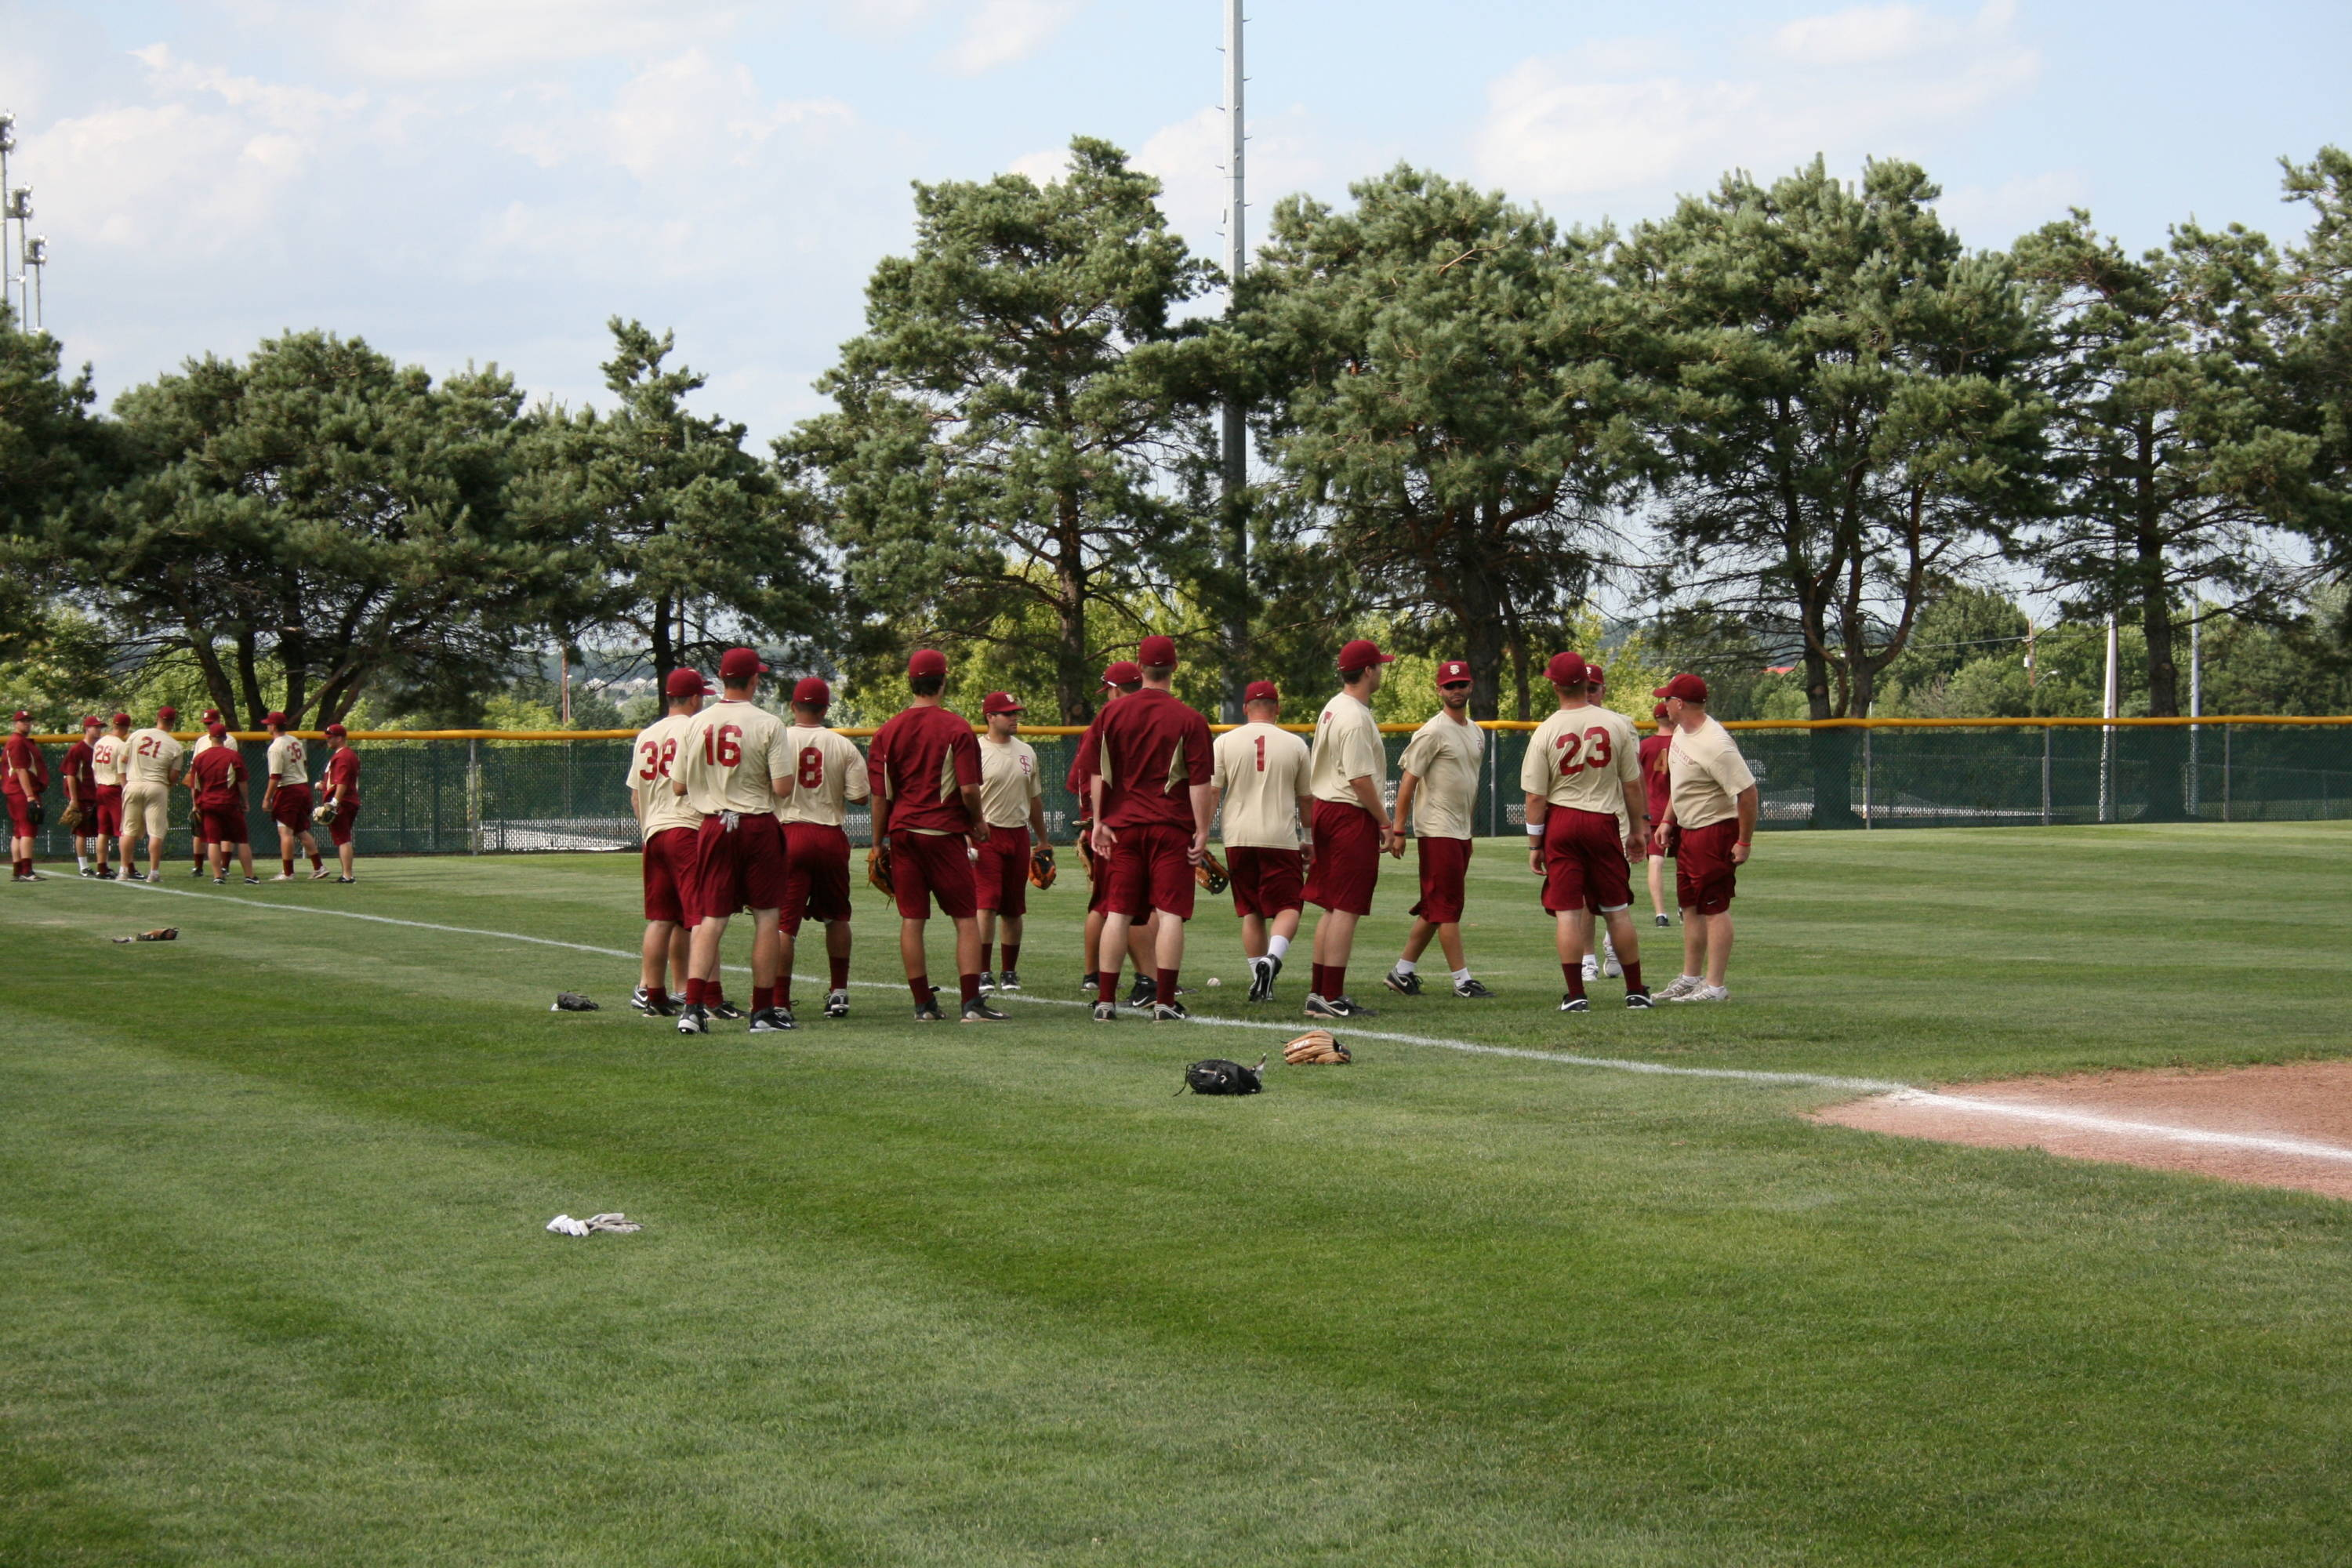 Seminoles at practice on Friday